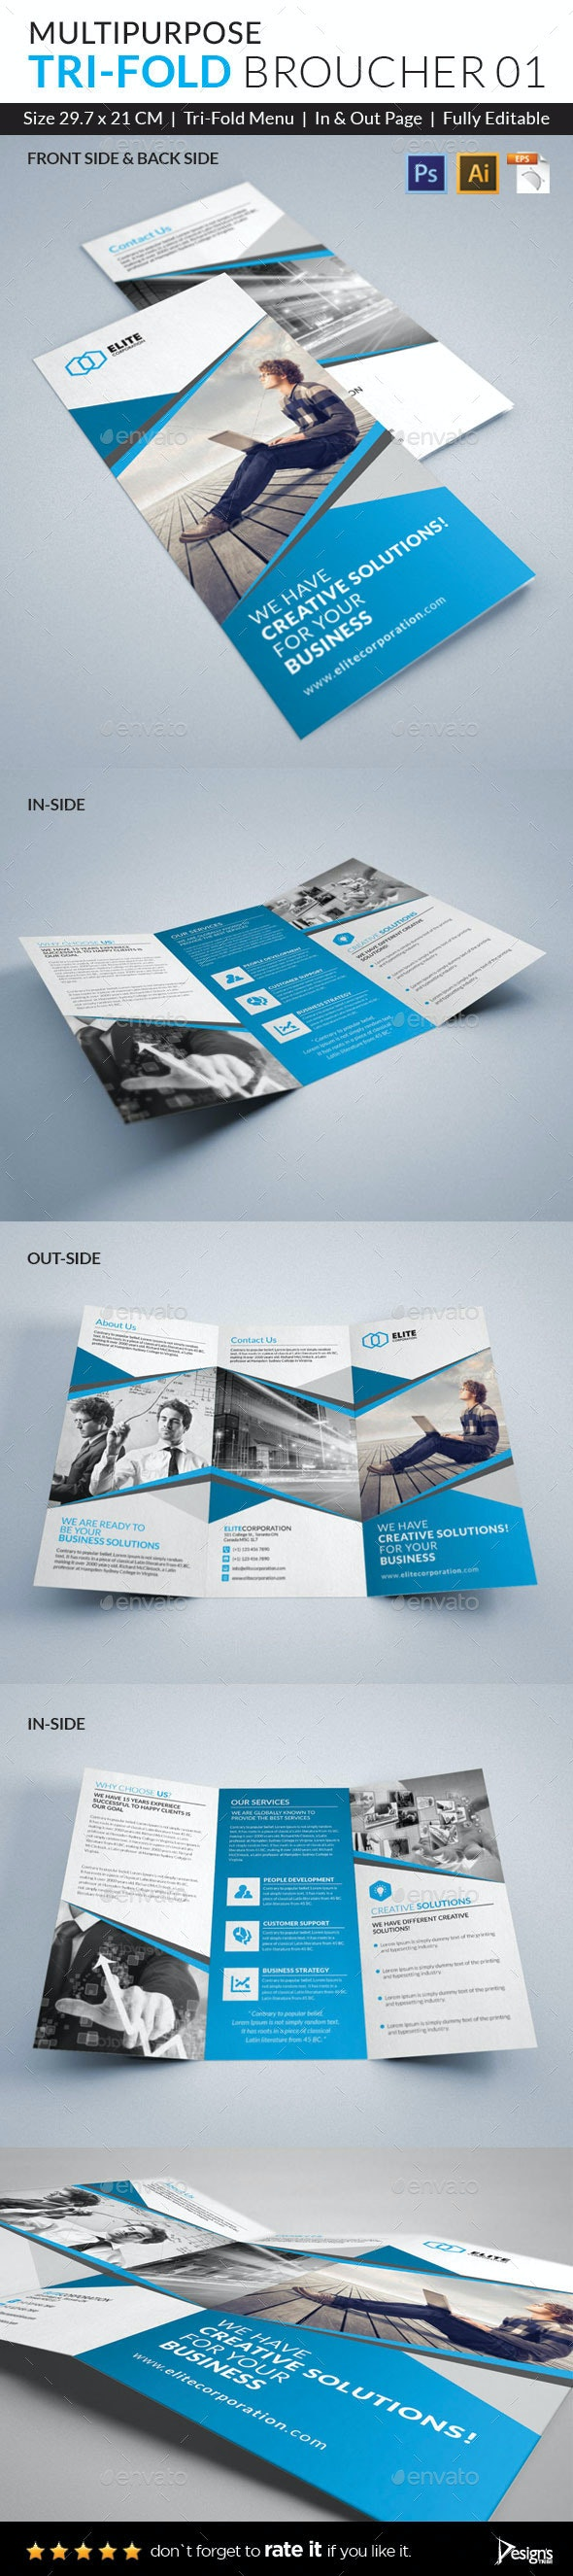 Trifold Brochure with PSD - Brochures Print Templates